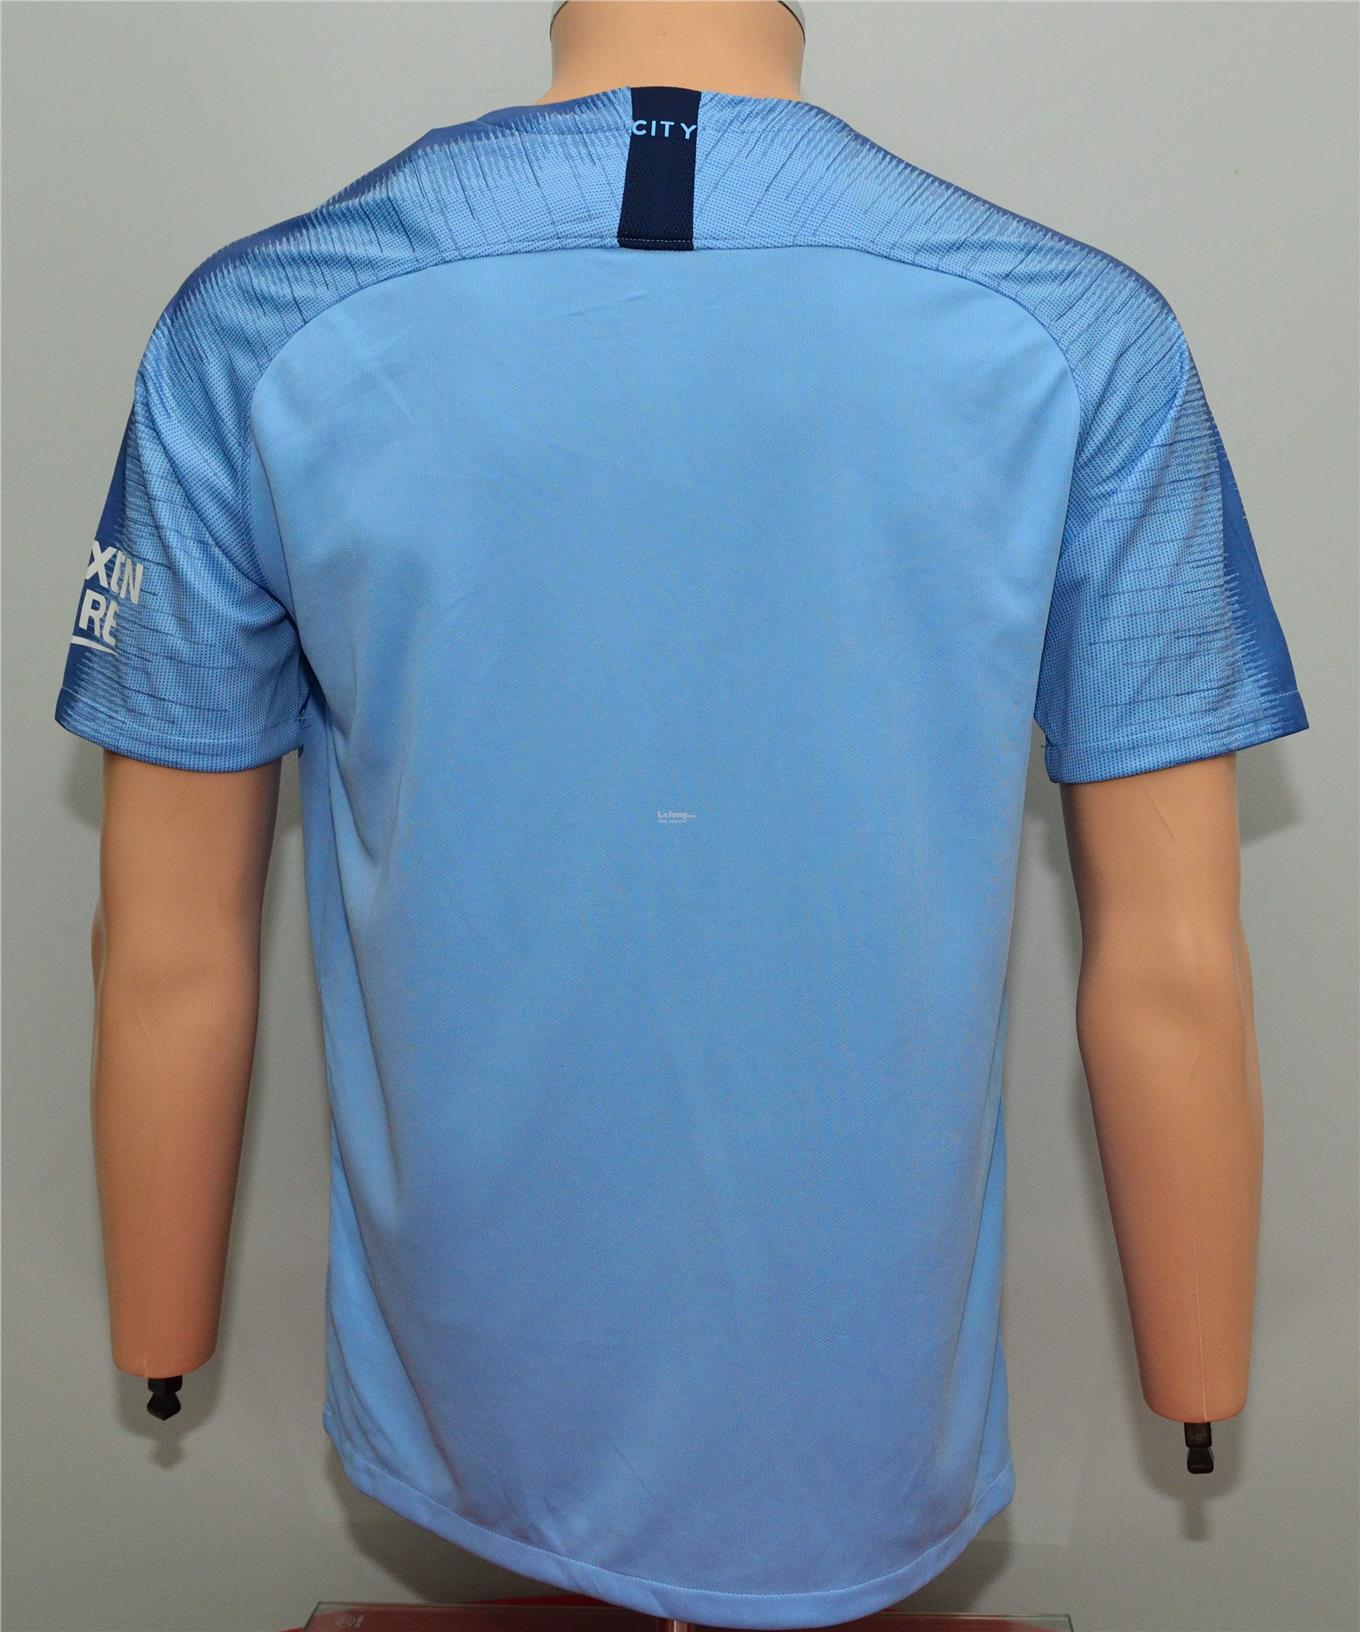 ab8ee8931 Jersey Manchester City Home for Men 2 (end 9 6 2019 7 15 PM)